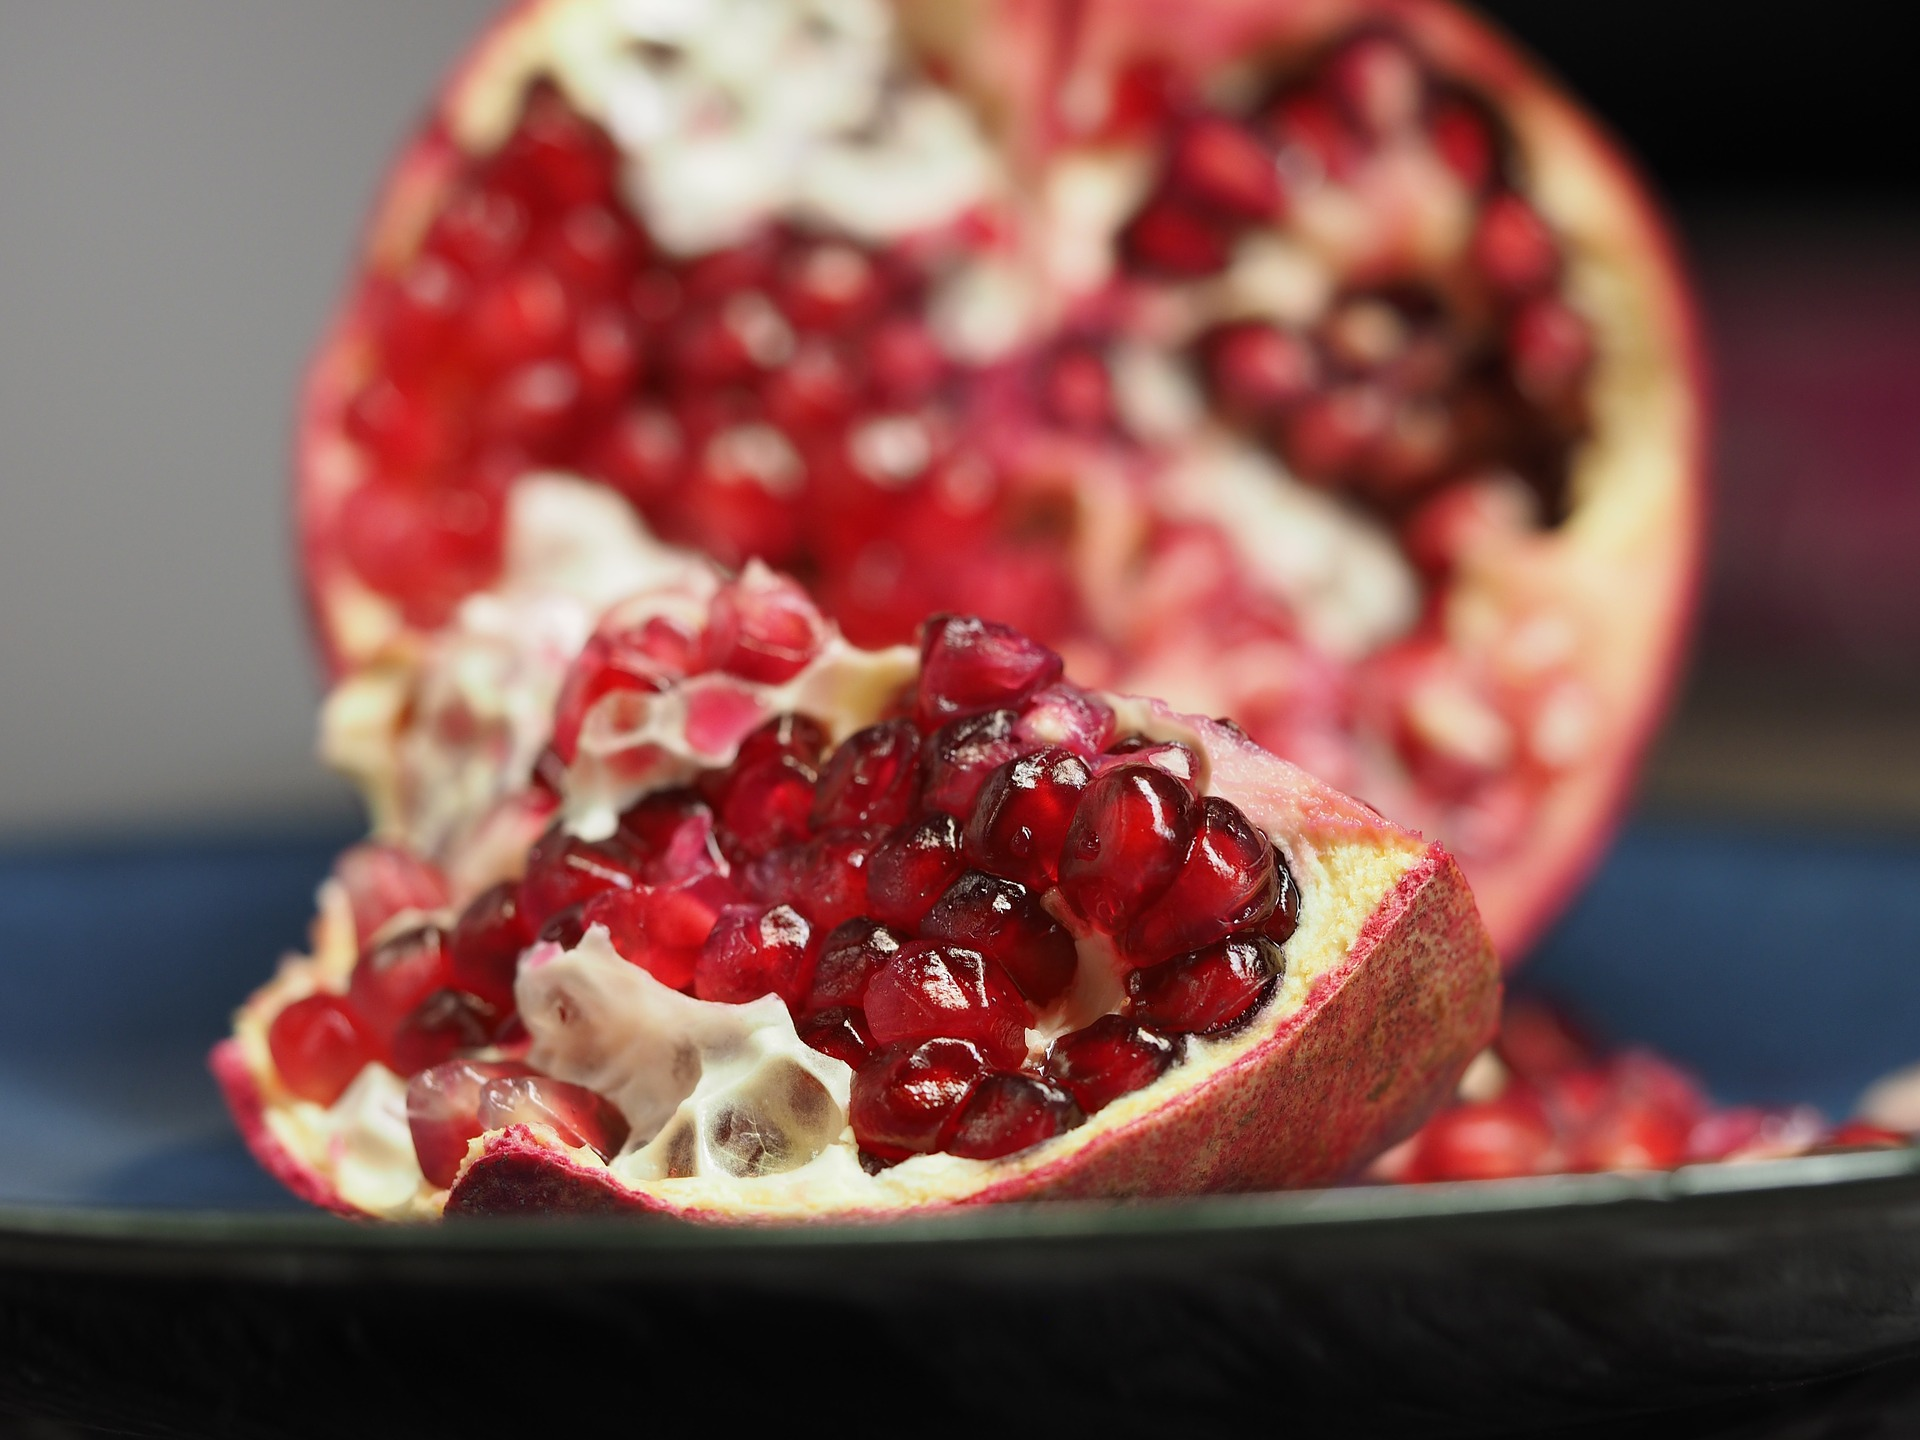 pomegranate-1076657_1920.jpg